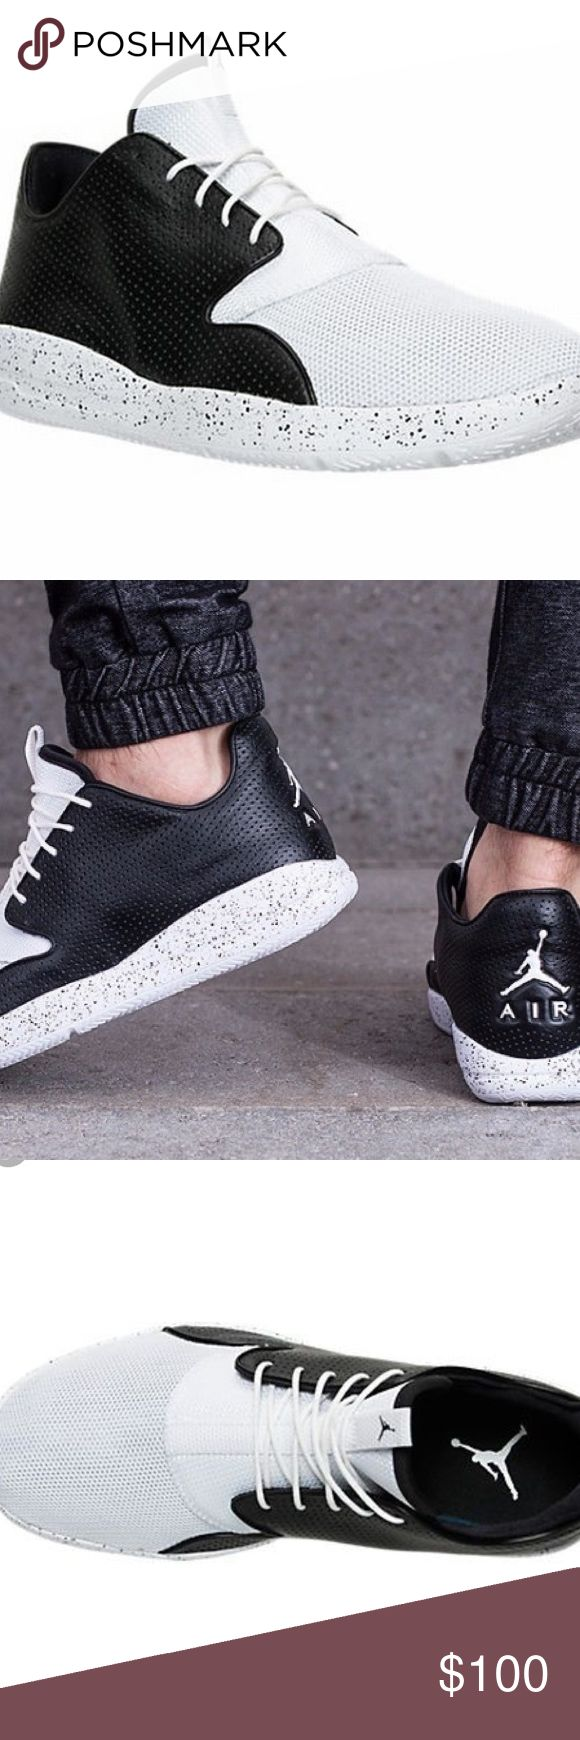 Mens NIKE JORDAN ECLIPSE Black/White Trainers Pre Owned Condition--- Very good 100% Authentic!!  upper: leather / mesh lining: textile sole: rubber  Black / White Colours Jordan logo lace up Air Jordan Shoes Sneakers